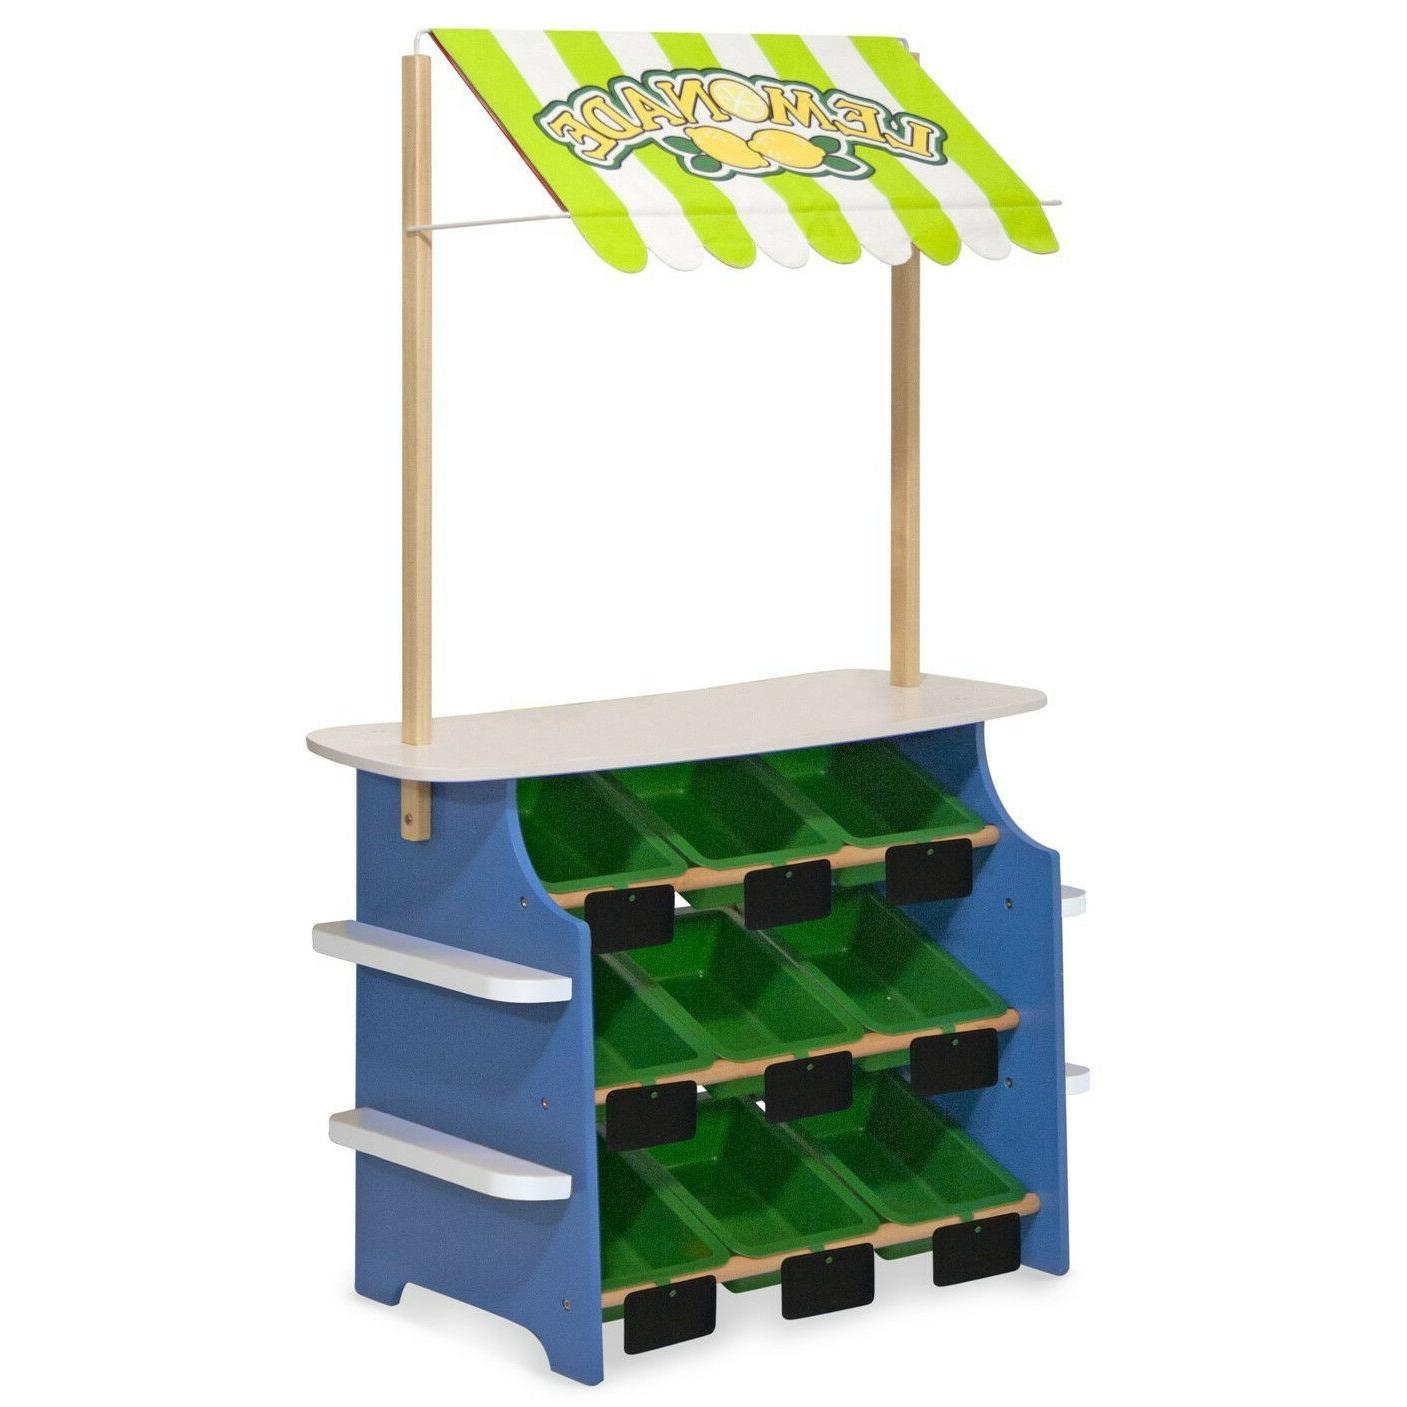 Wooden Grocery Lemonade Stand Kid Toy Toddler Activity